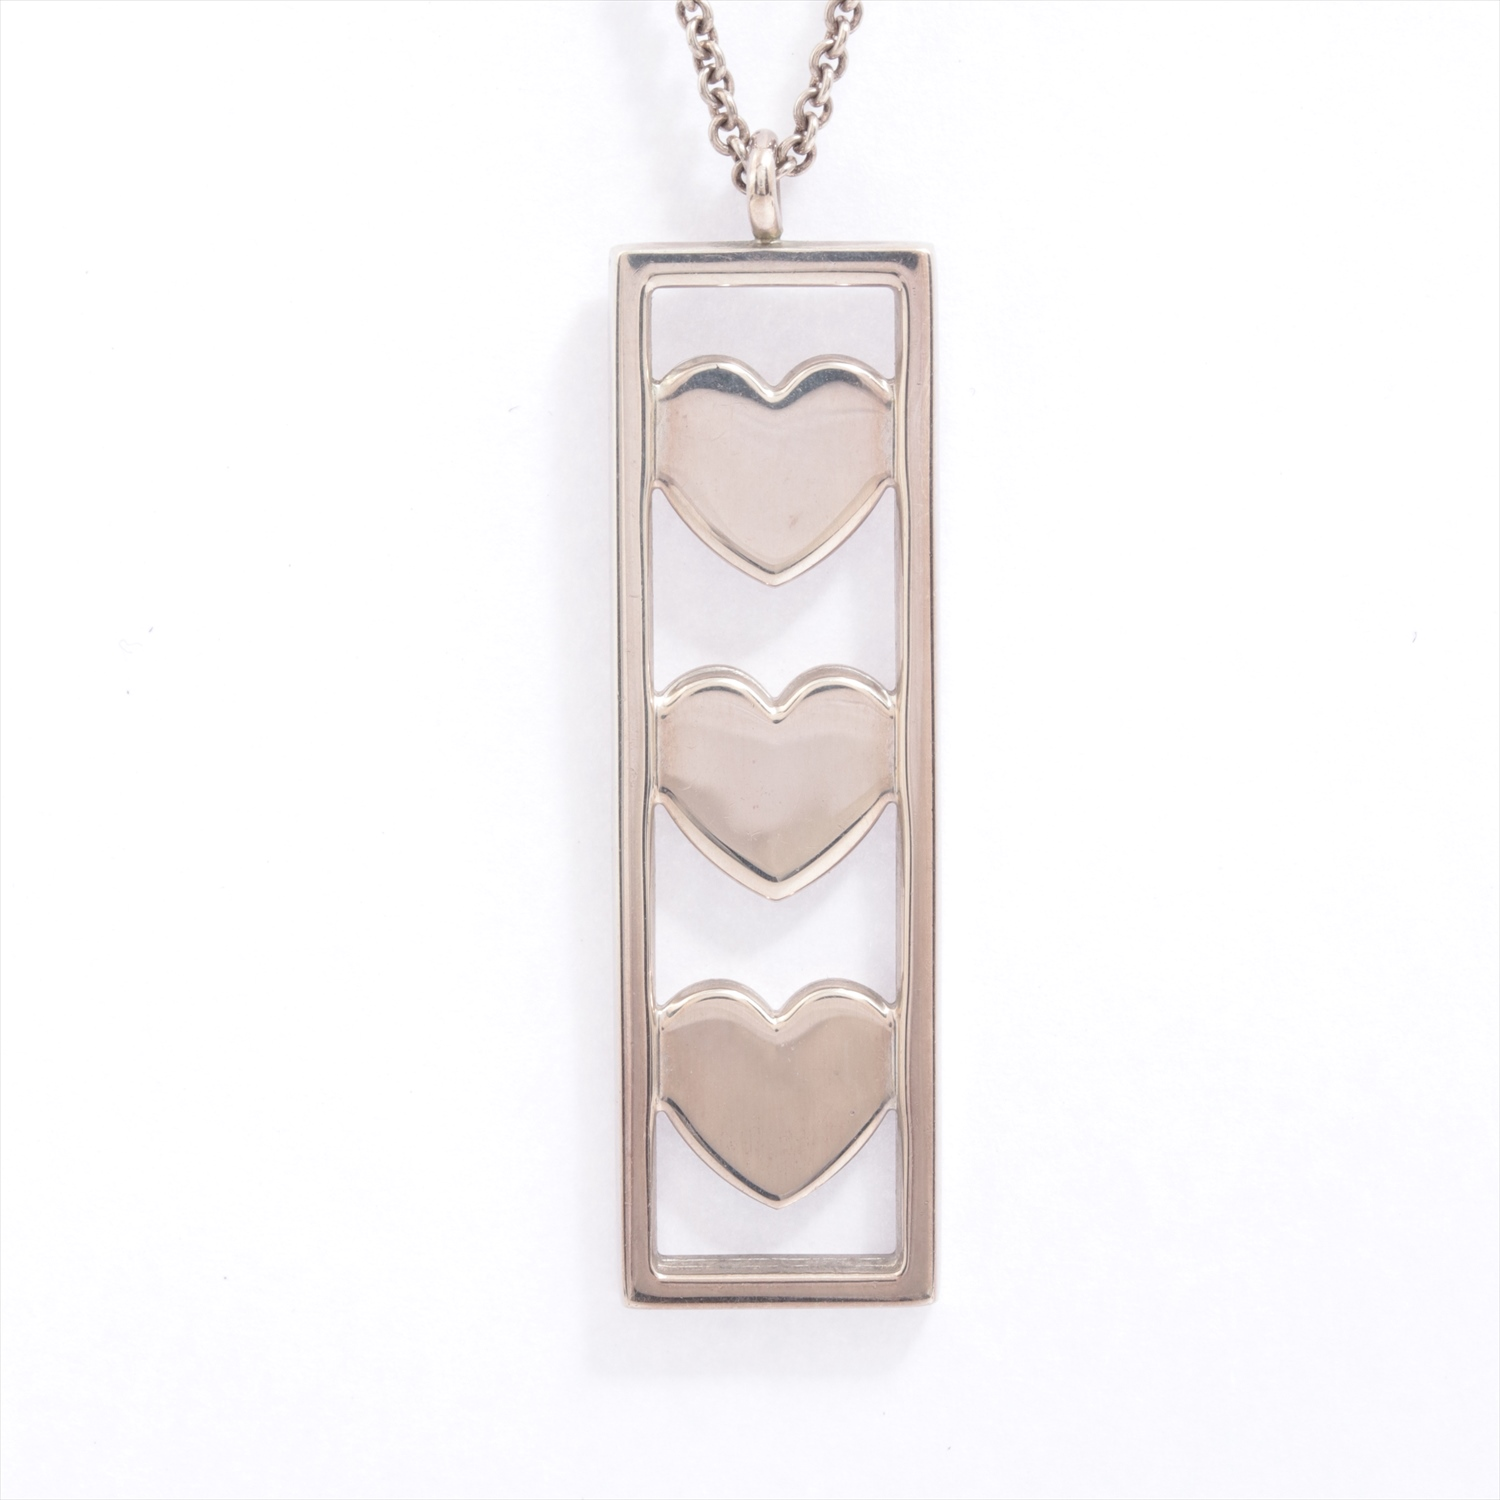 Used Article Tiffany Necklace 925 9 5g Silver Frame Heart Dokodemo